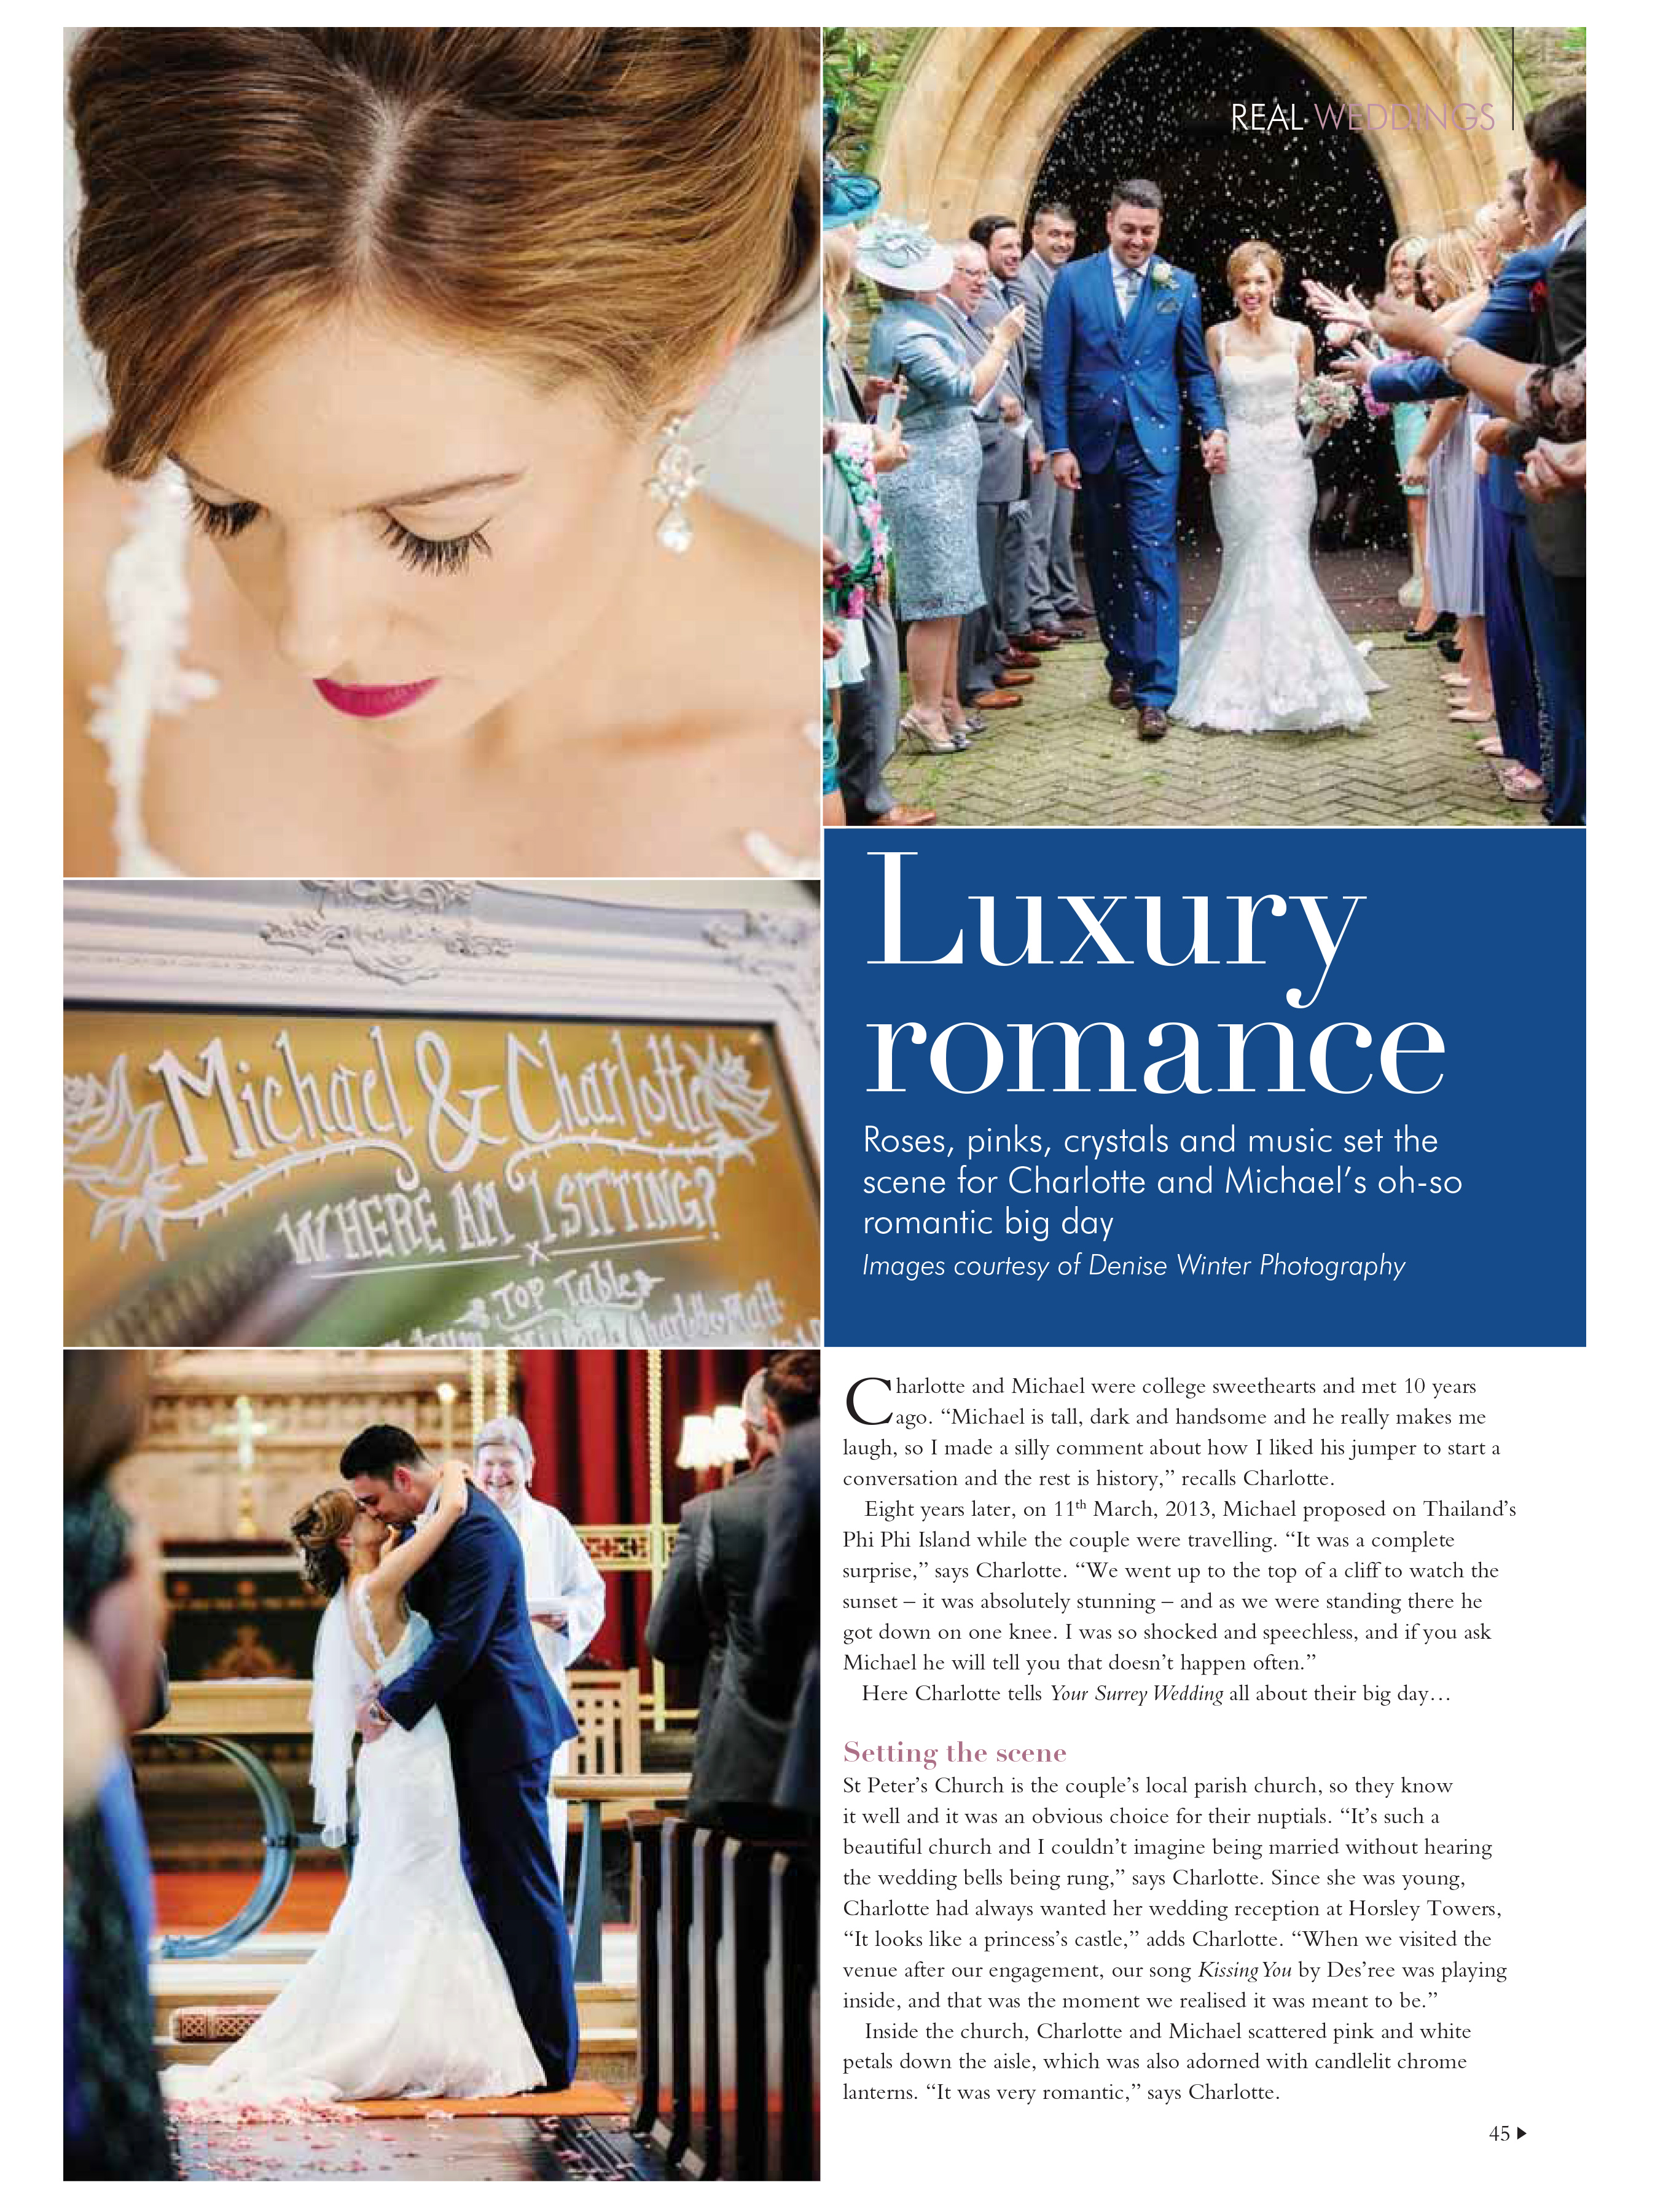 Horsley Park Wedding - Your Surrey Wedding Magazine - Denise Winter Photography07